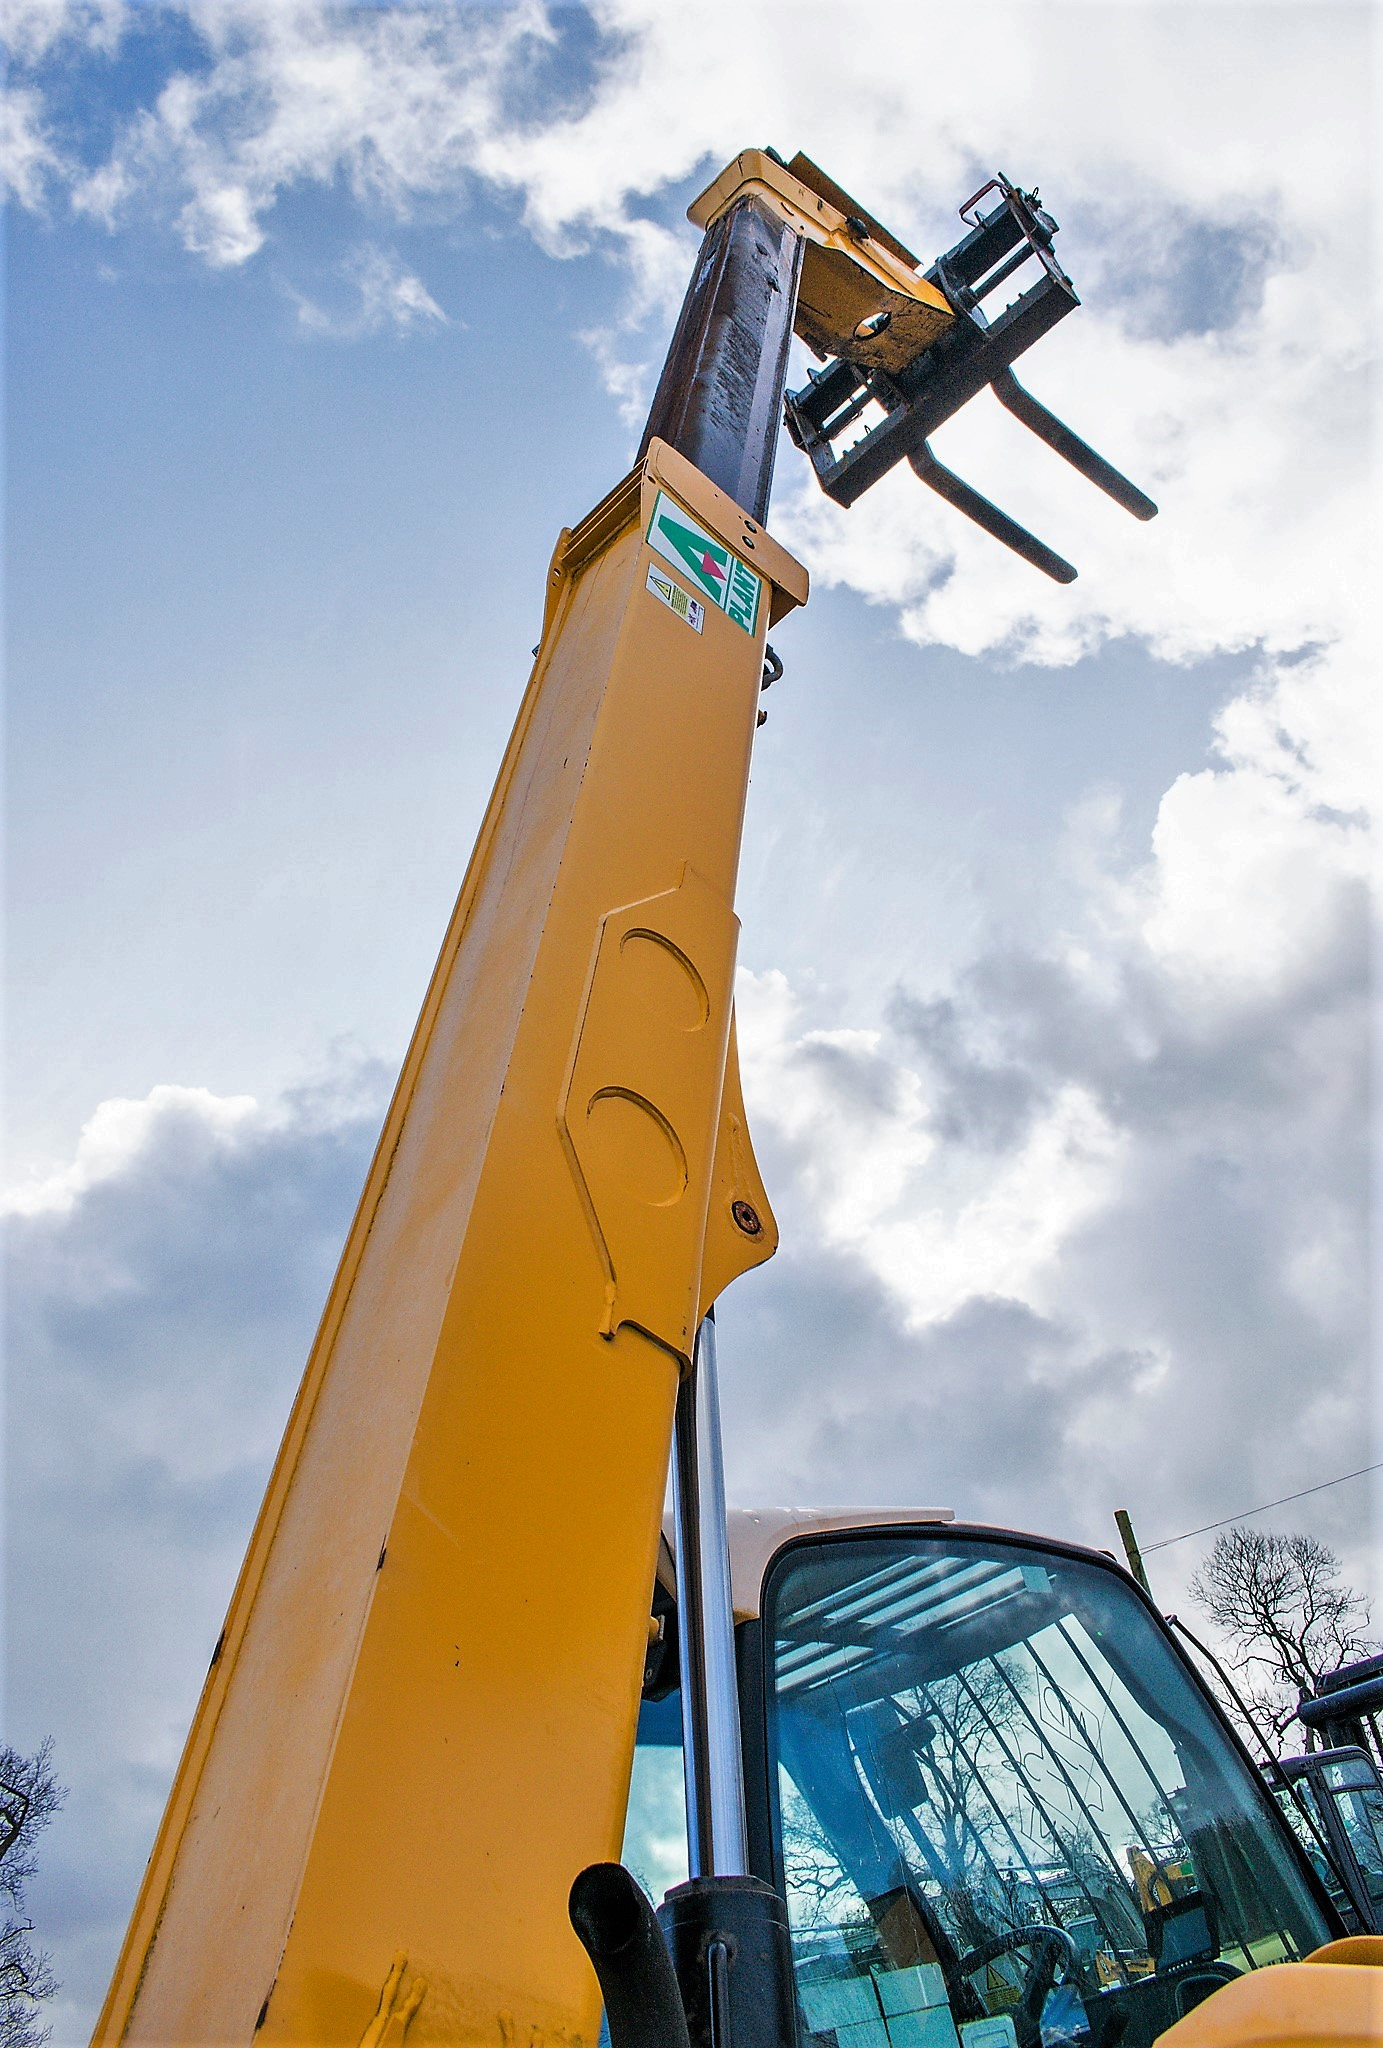 JCB 531-70 7 metre telescopic handler Year: 2013 S/N: 2176575 Reg No: MX13 PHY Recorded Hours: - Image 15 of 19